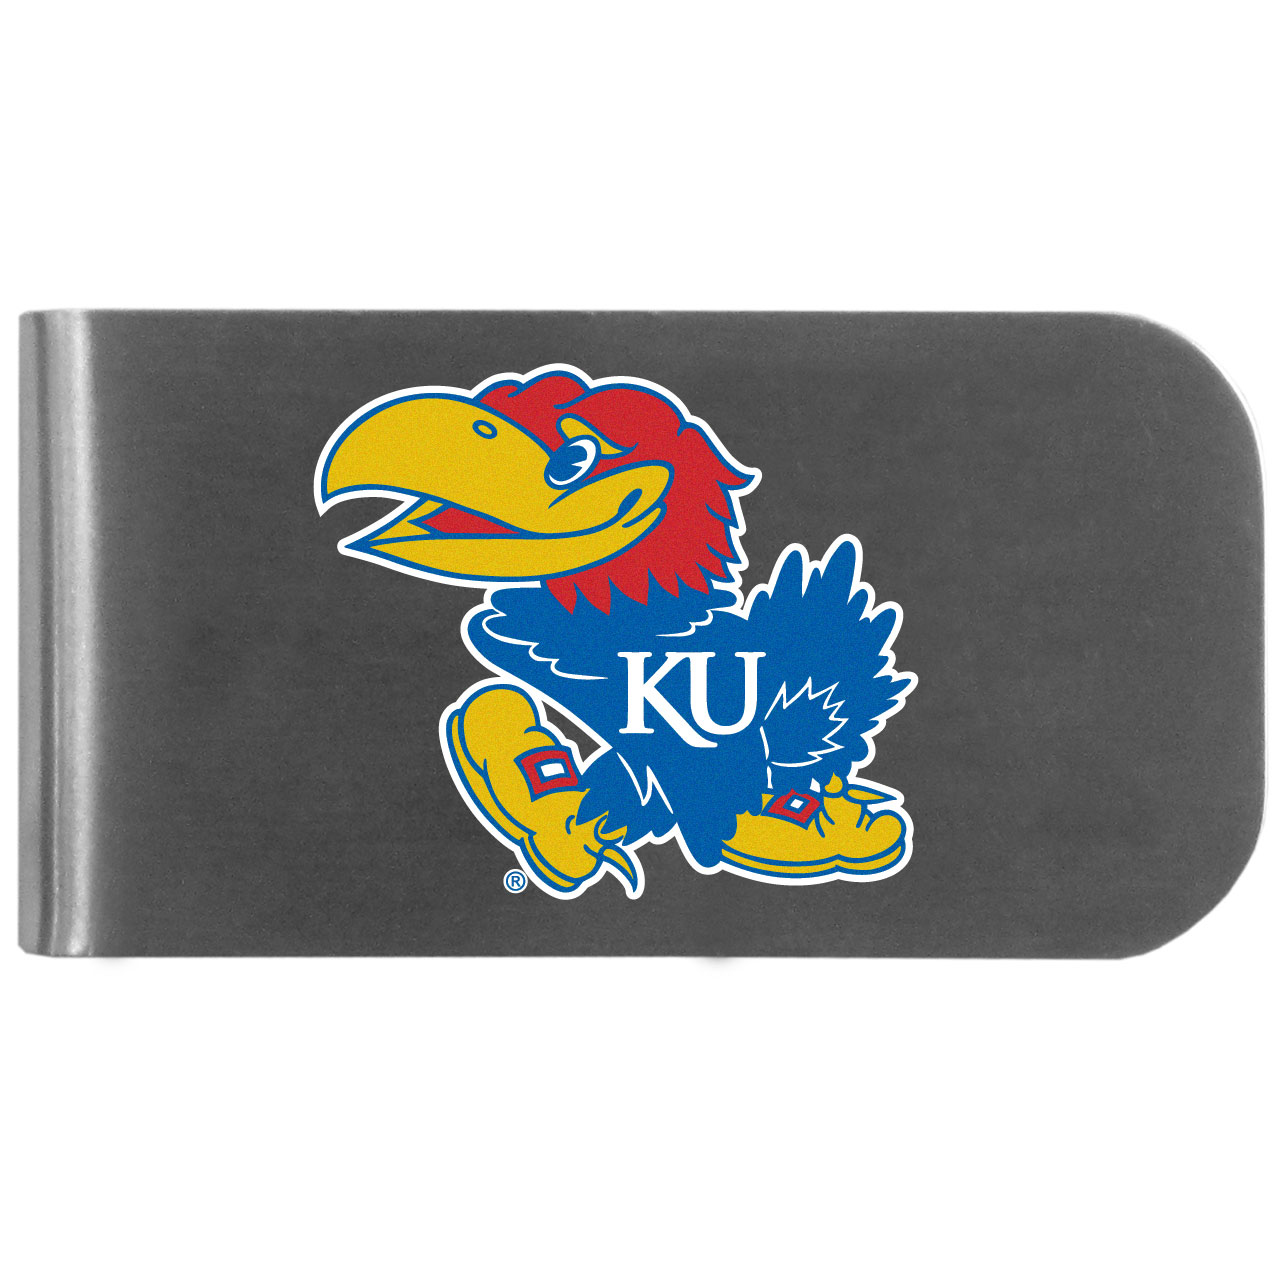 Kansas Jayhawks Logo Bottle Opener Money Clip - This unique money clip features a classic, brushed-metal finish with a handy bottle opener feature on the back. The clip has the Kansas Jayhawks logo expertly printed on the front of the clip.